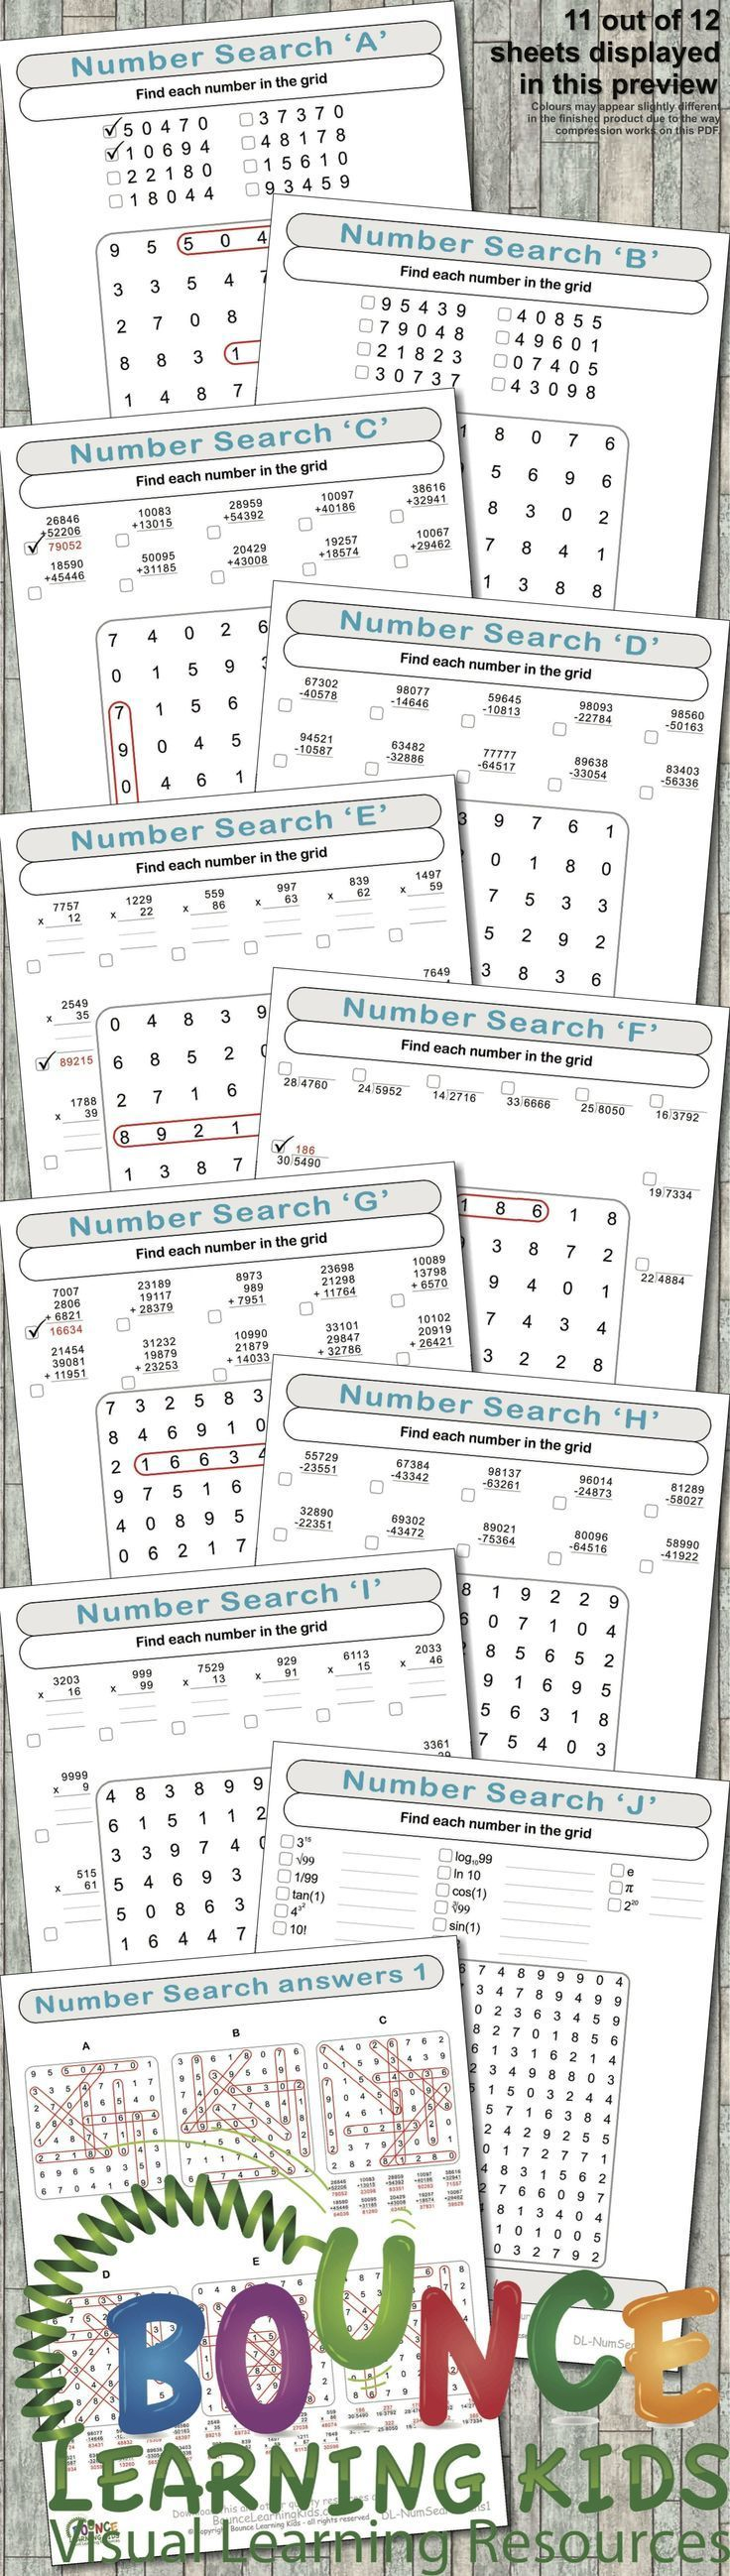 Numbers search is a fantastic way to make mental maths fun